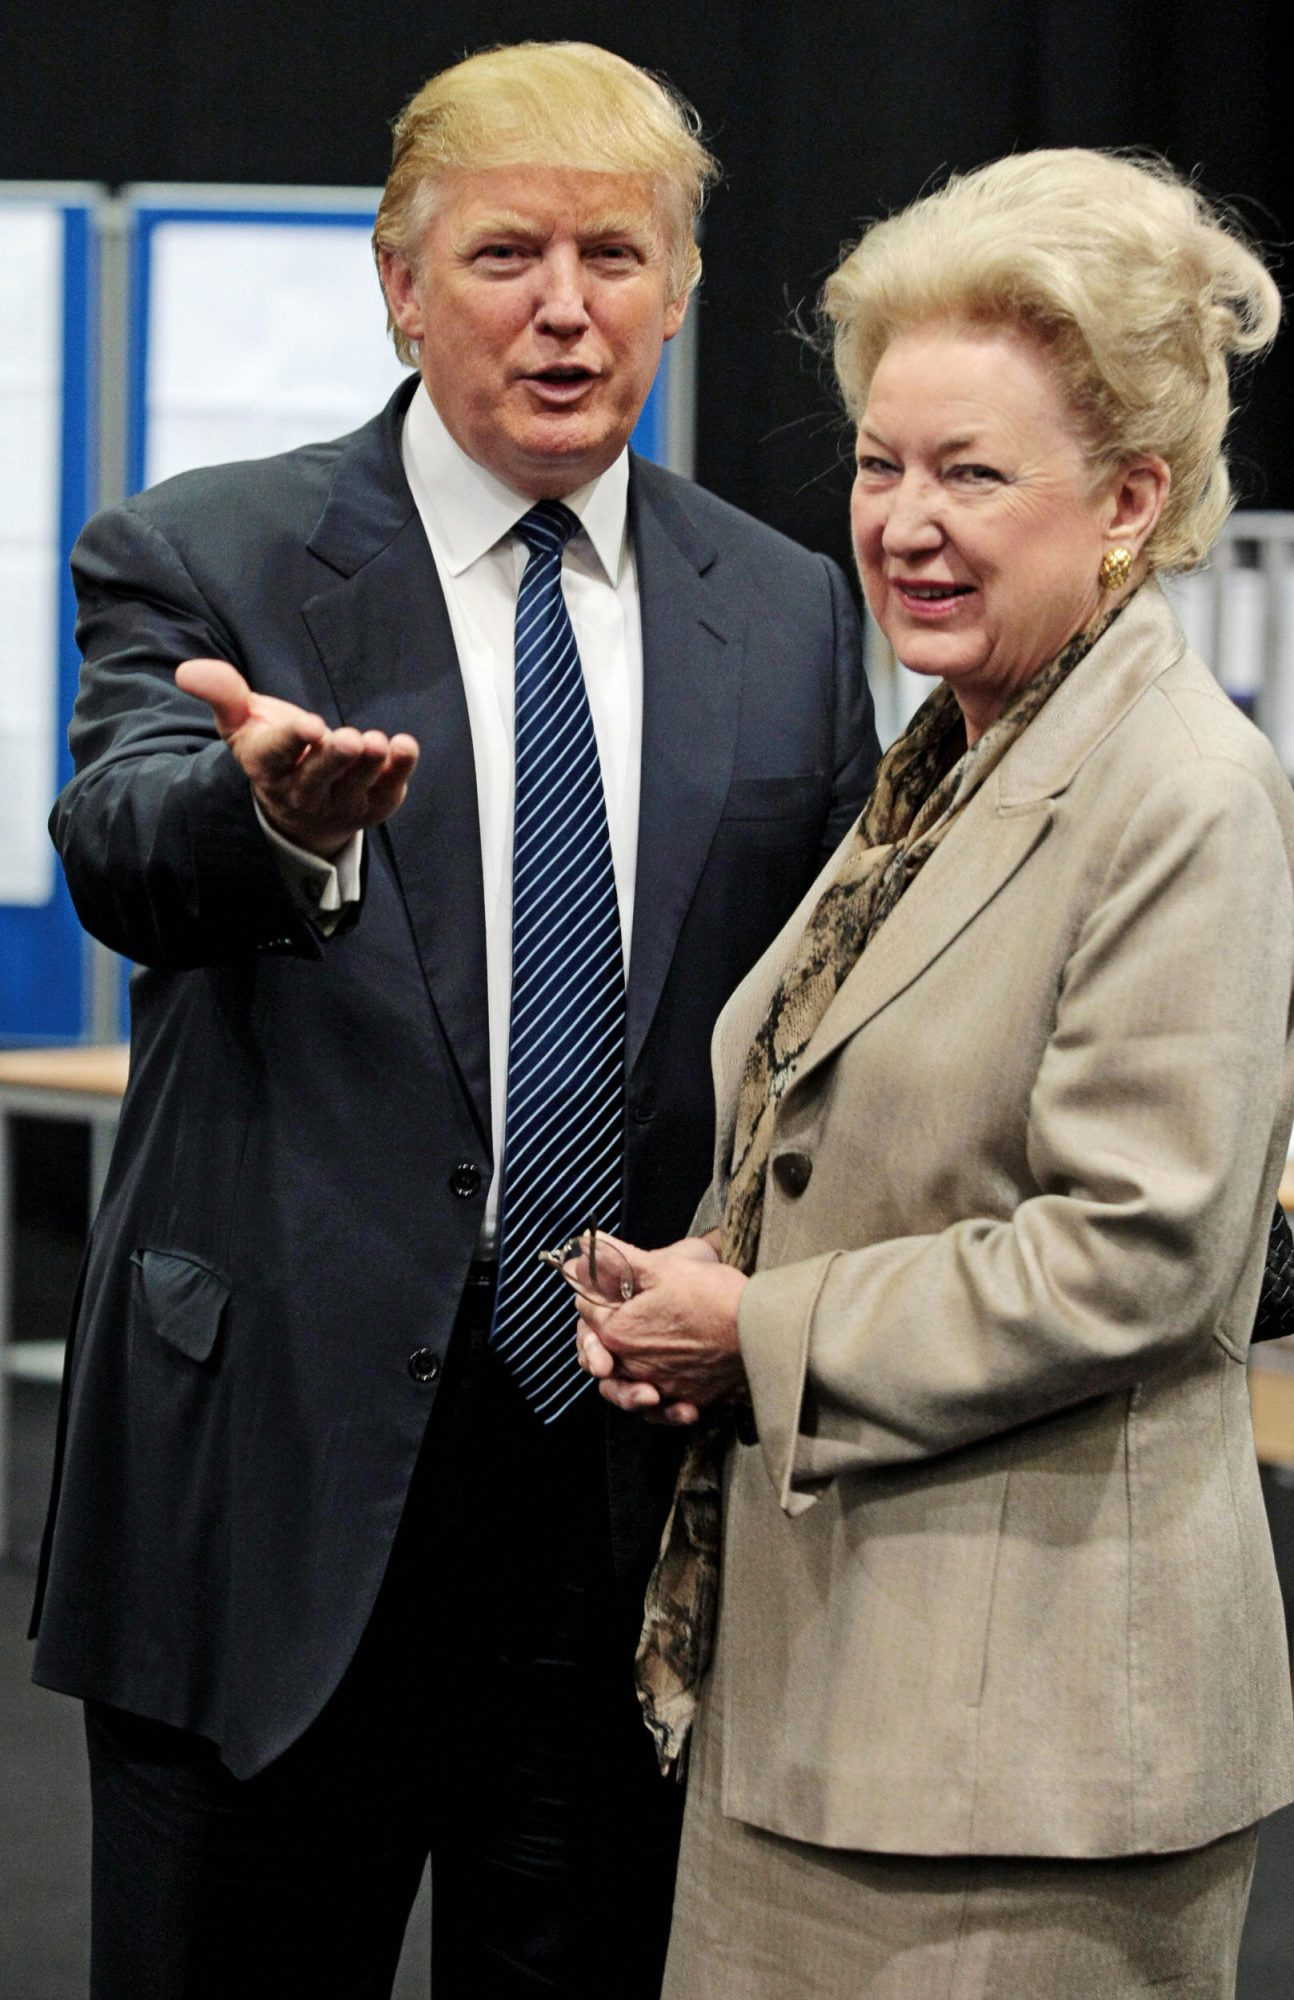 Donald Trump (L) is pictured with his sister Maryanne Trump